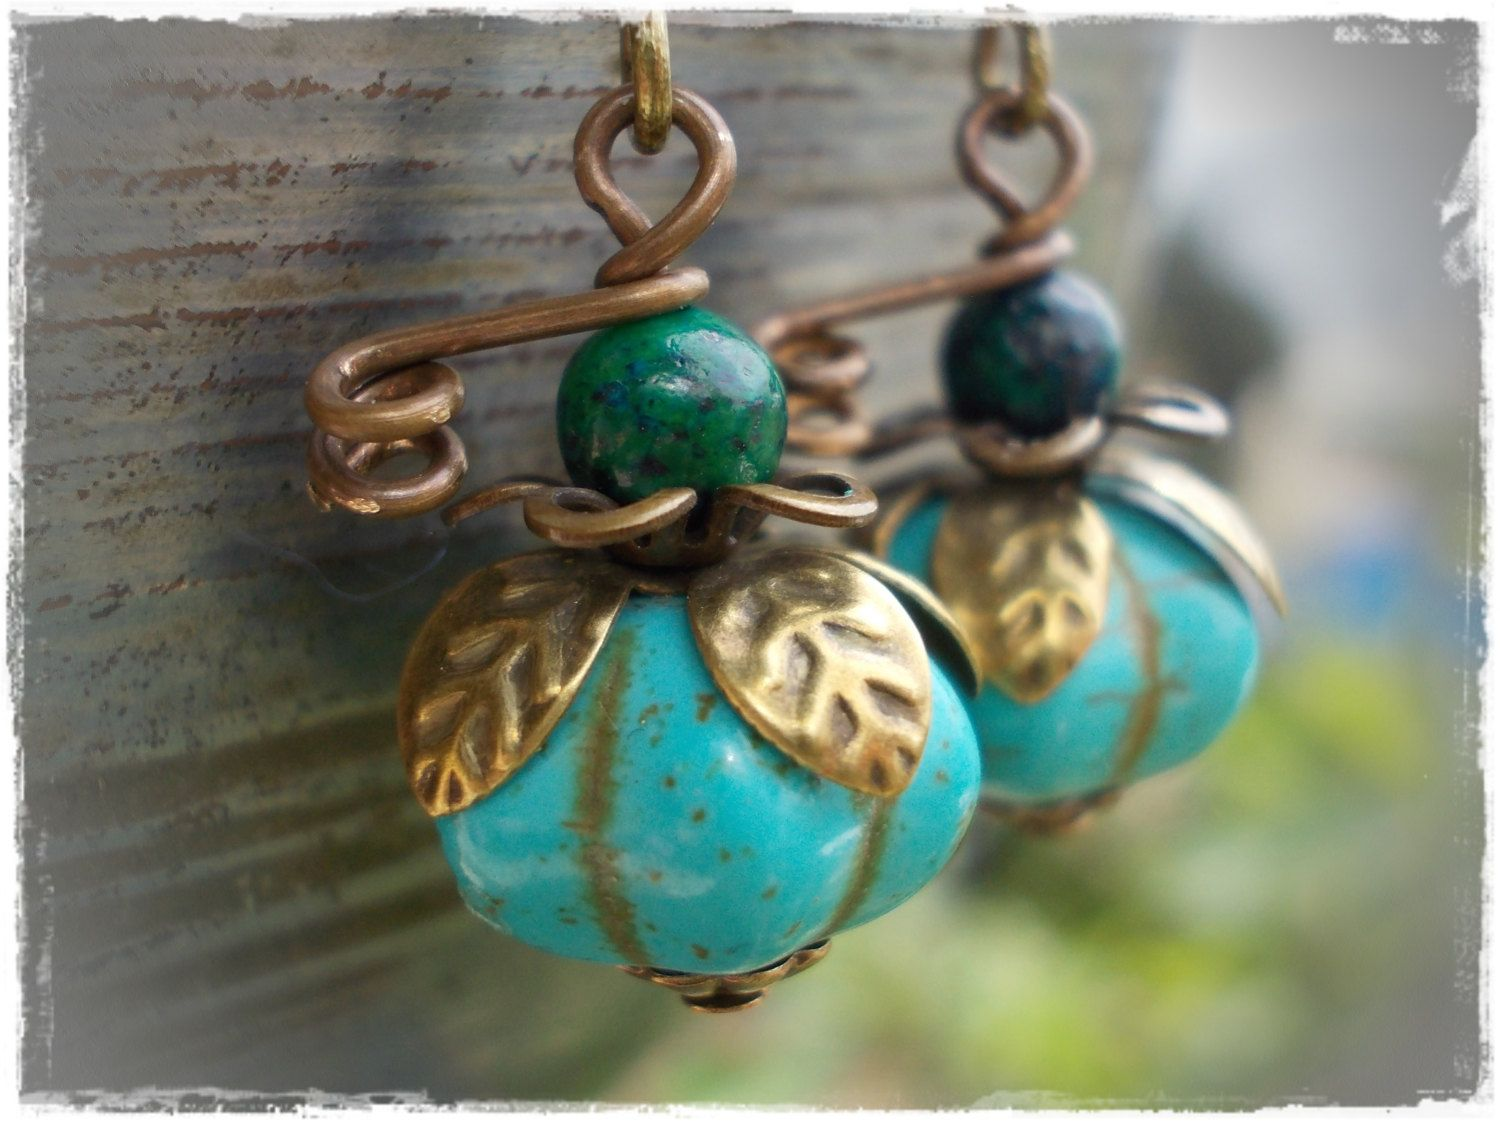 Pumpkin earrings Organic dangle drop earrings magnesite turquoise and chrysocolla on bronze brass berry fruit melon rustic persimmon howlite by karmelidesigns on Etsy https://www.etsy.com/listing/183071560/pumpkin-earrings-organic-dangle-drop